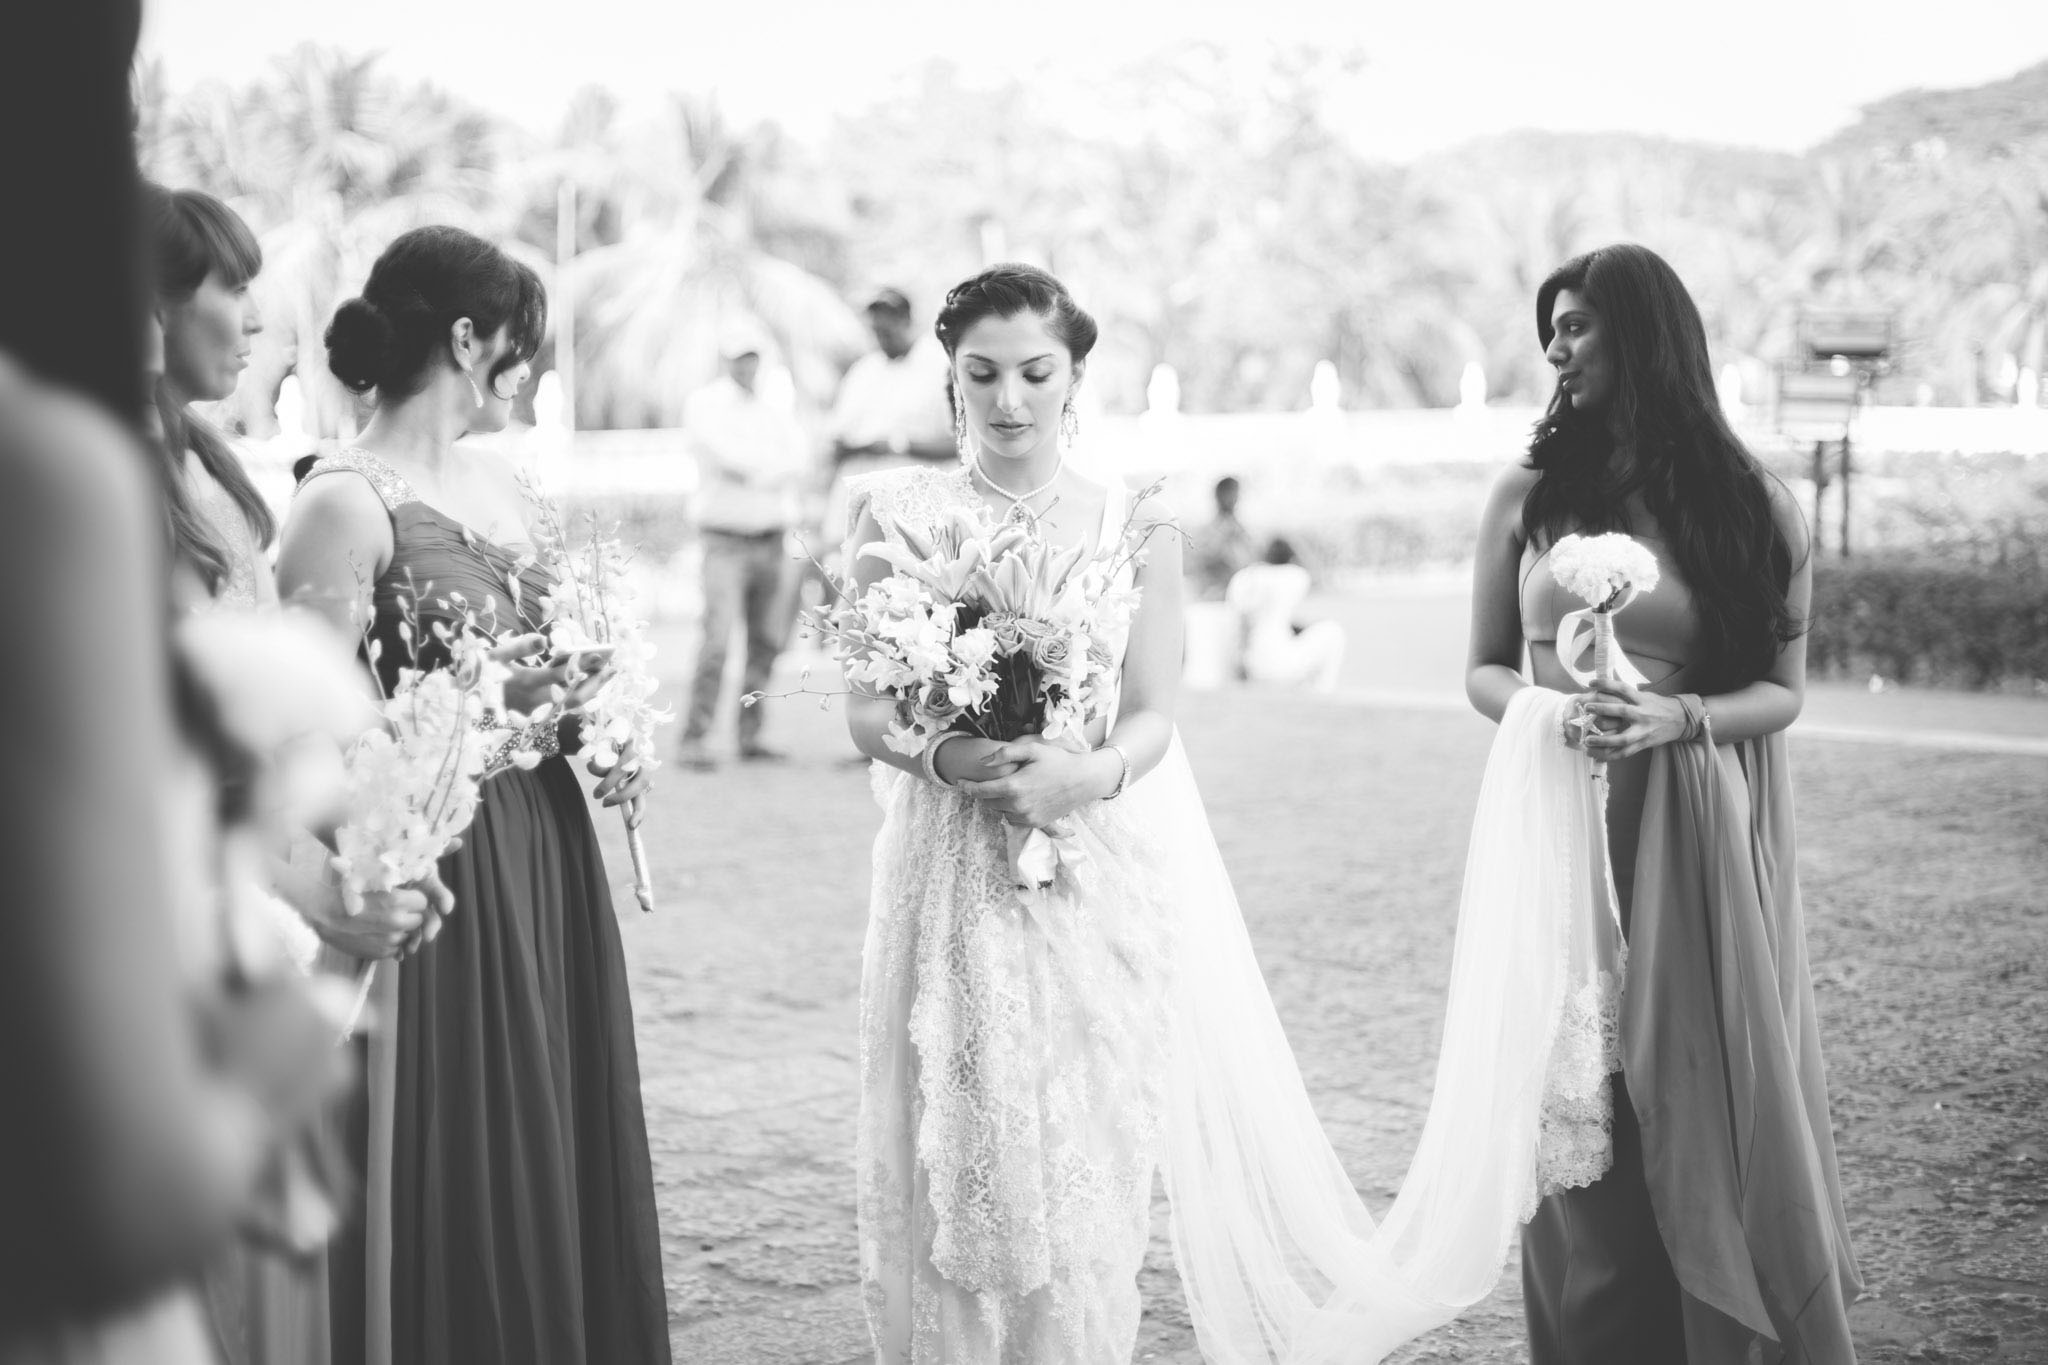 Big-Fat-Indian-Wedding-Destination-Goa-Cidade-de-goa-whatknot-candid-photography-60